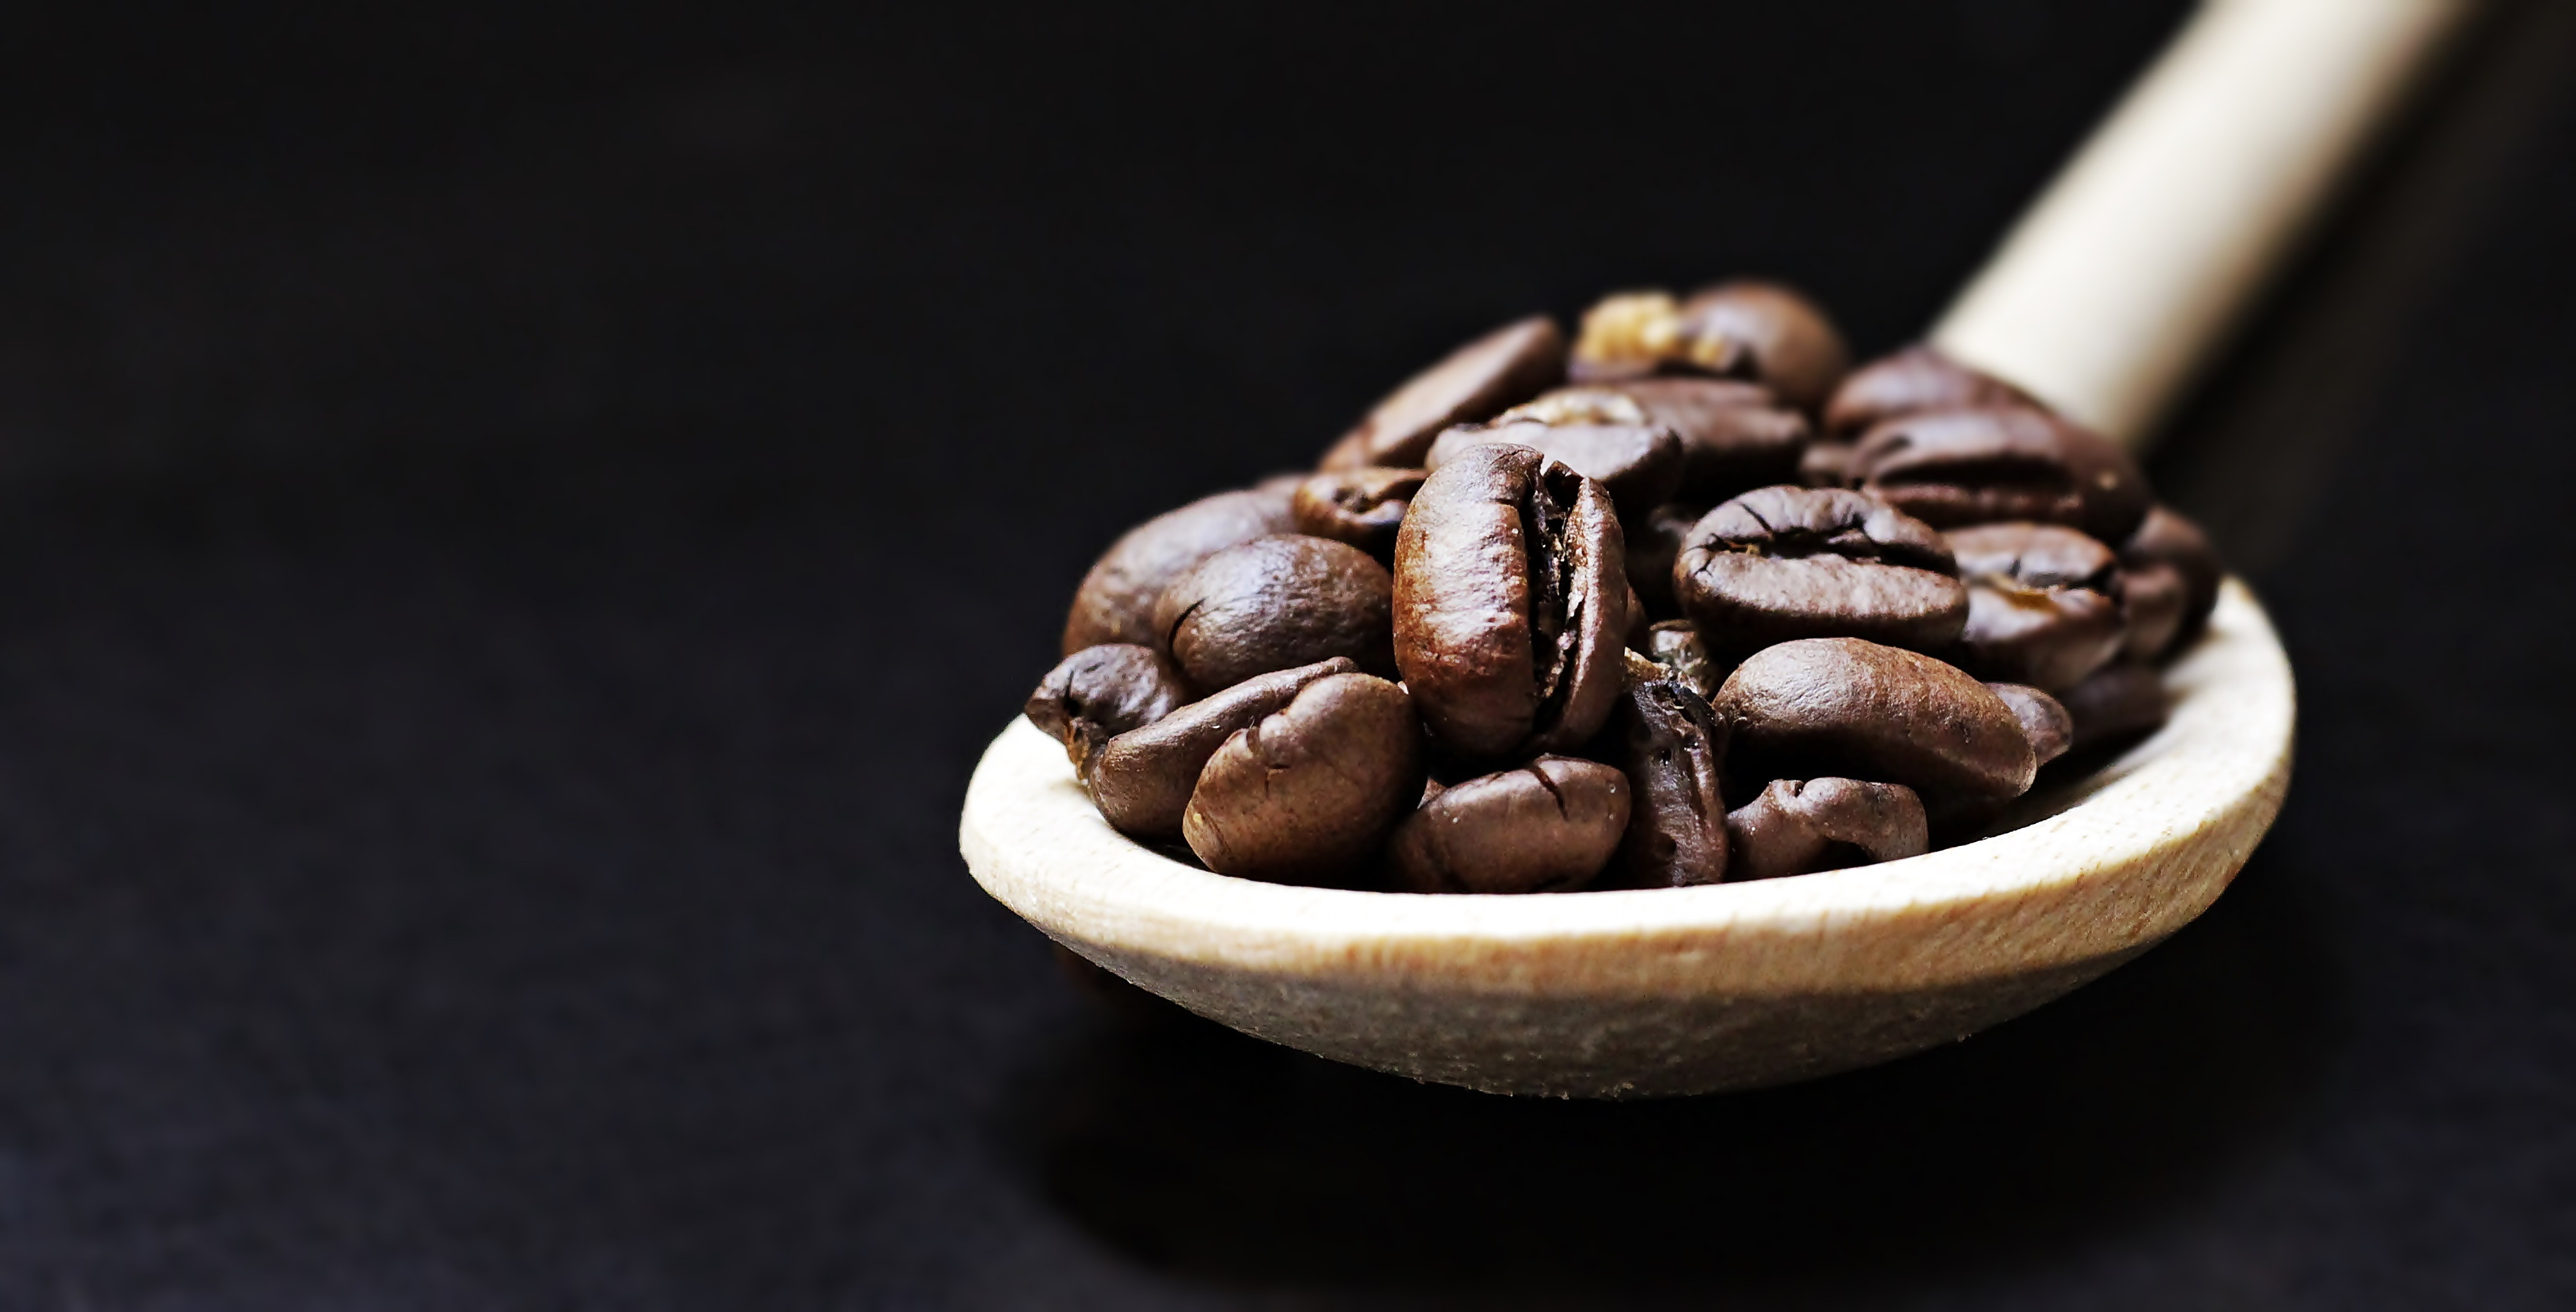 beans-caffeine-close-up-coffee-416461